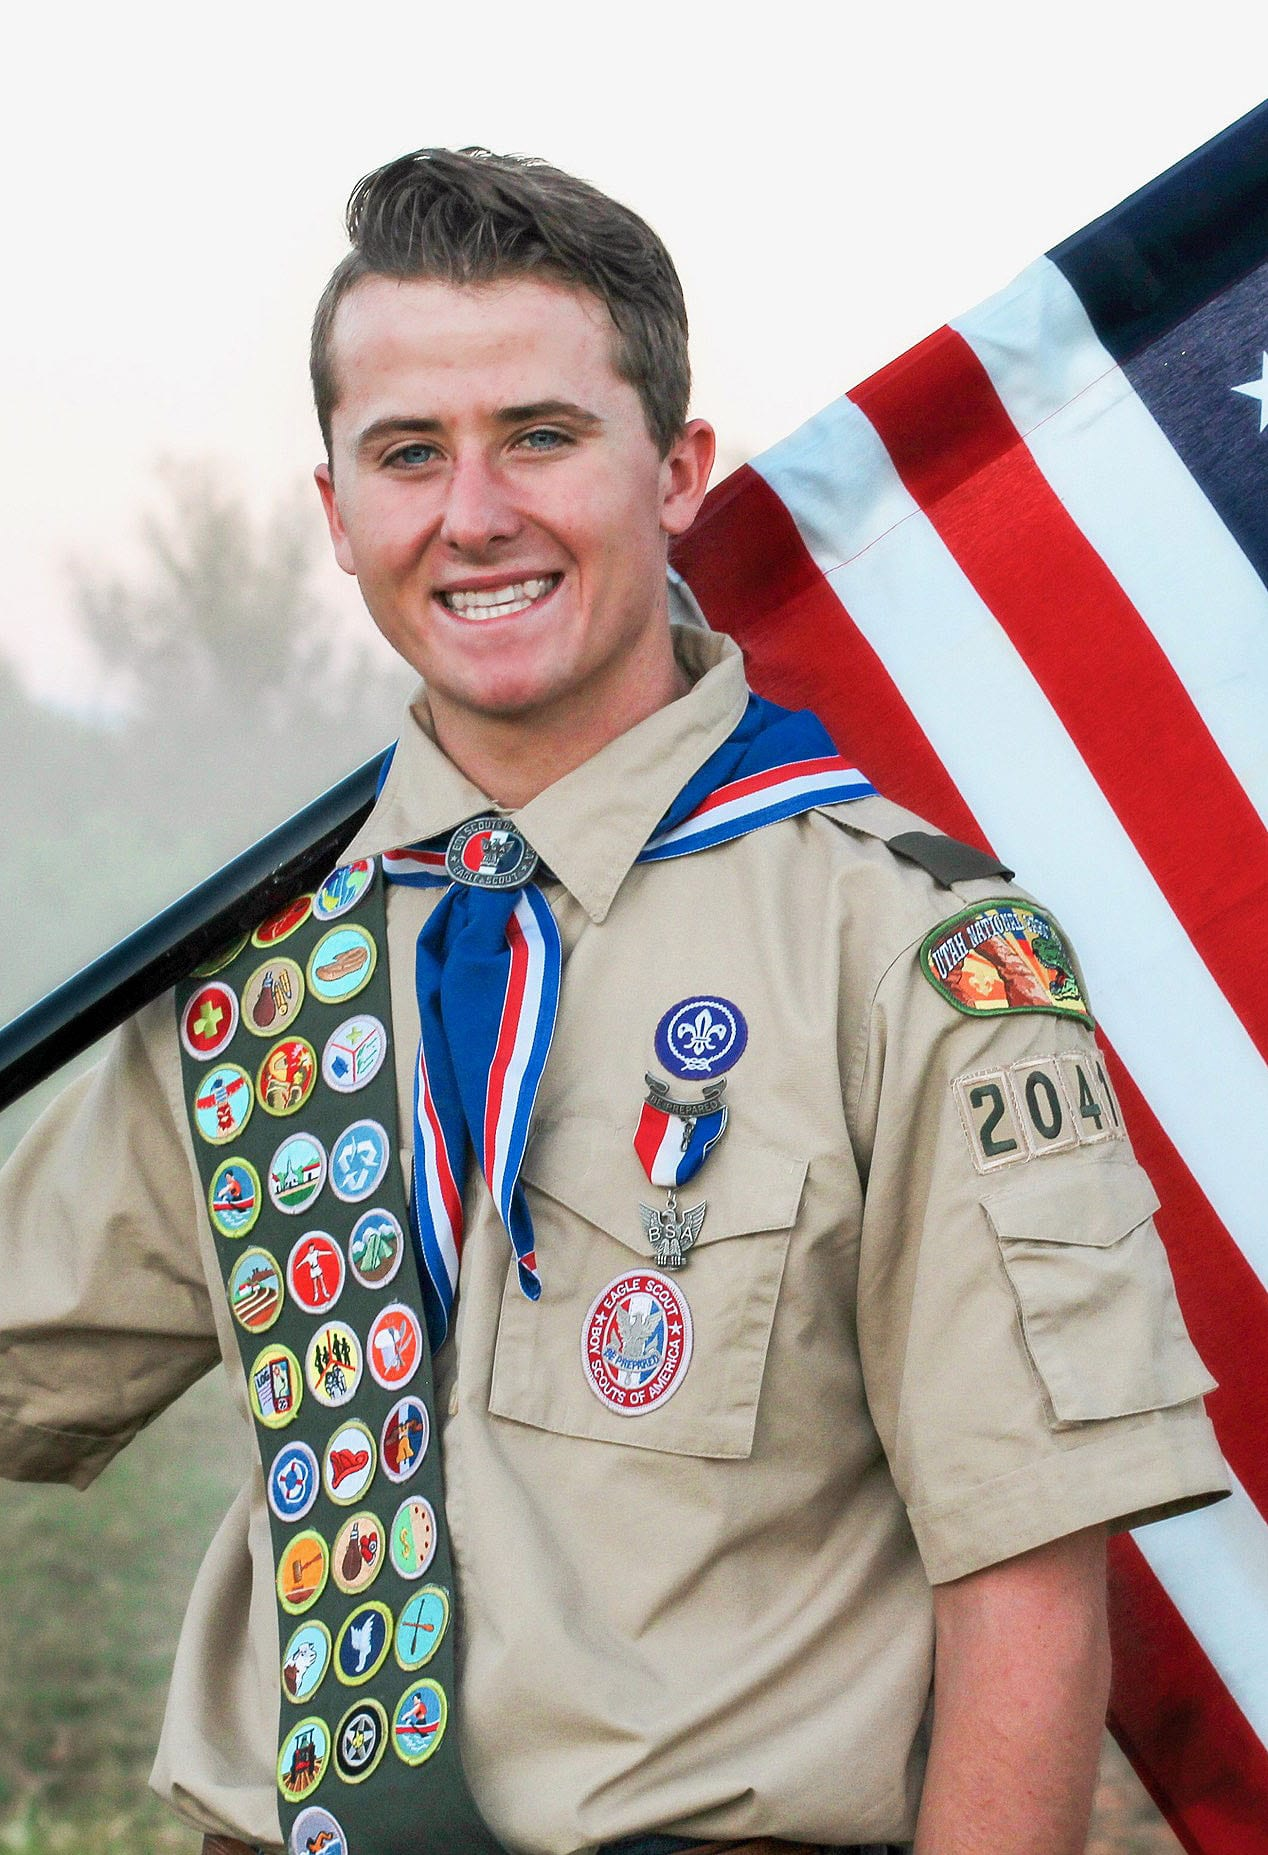 Trey Fred Houston received his Eagle Scout